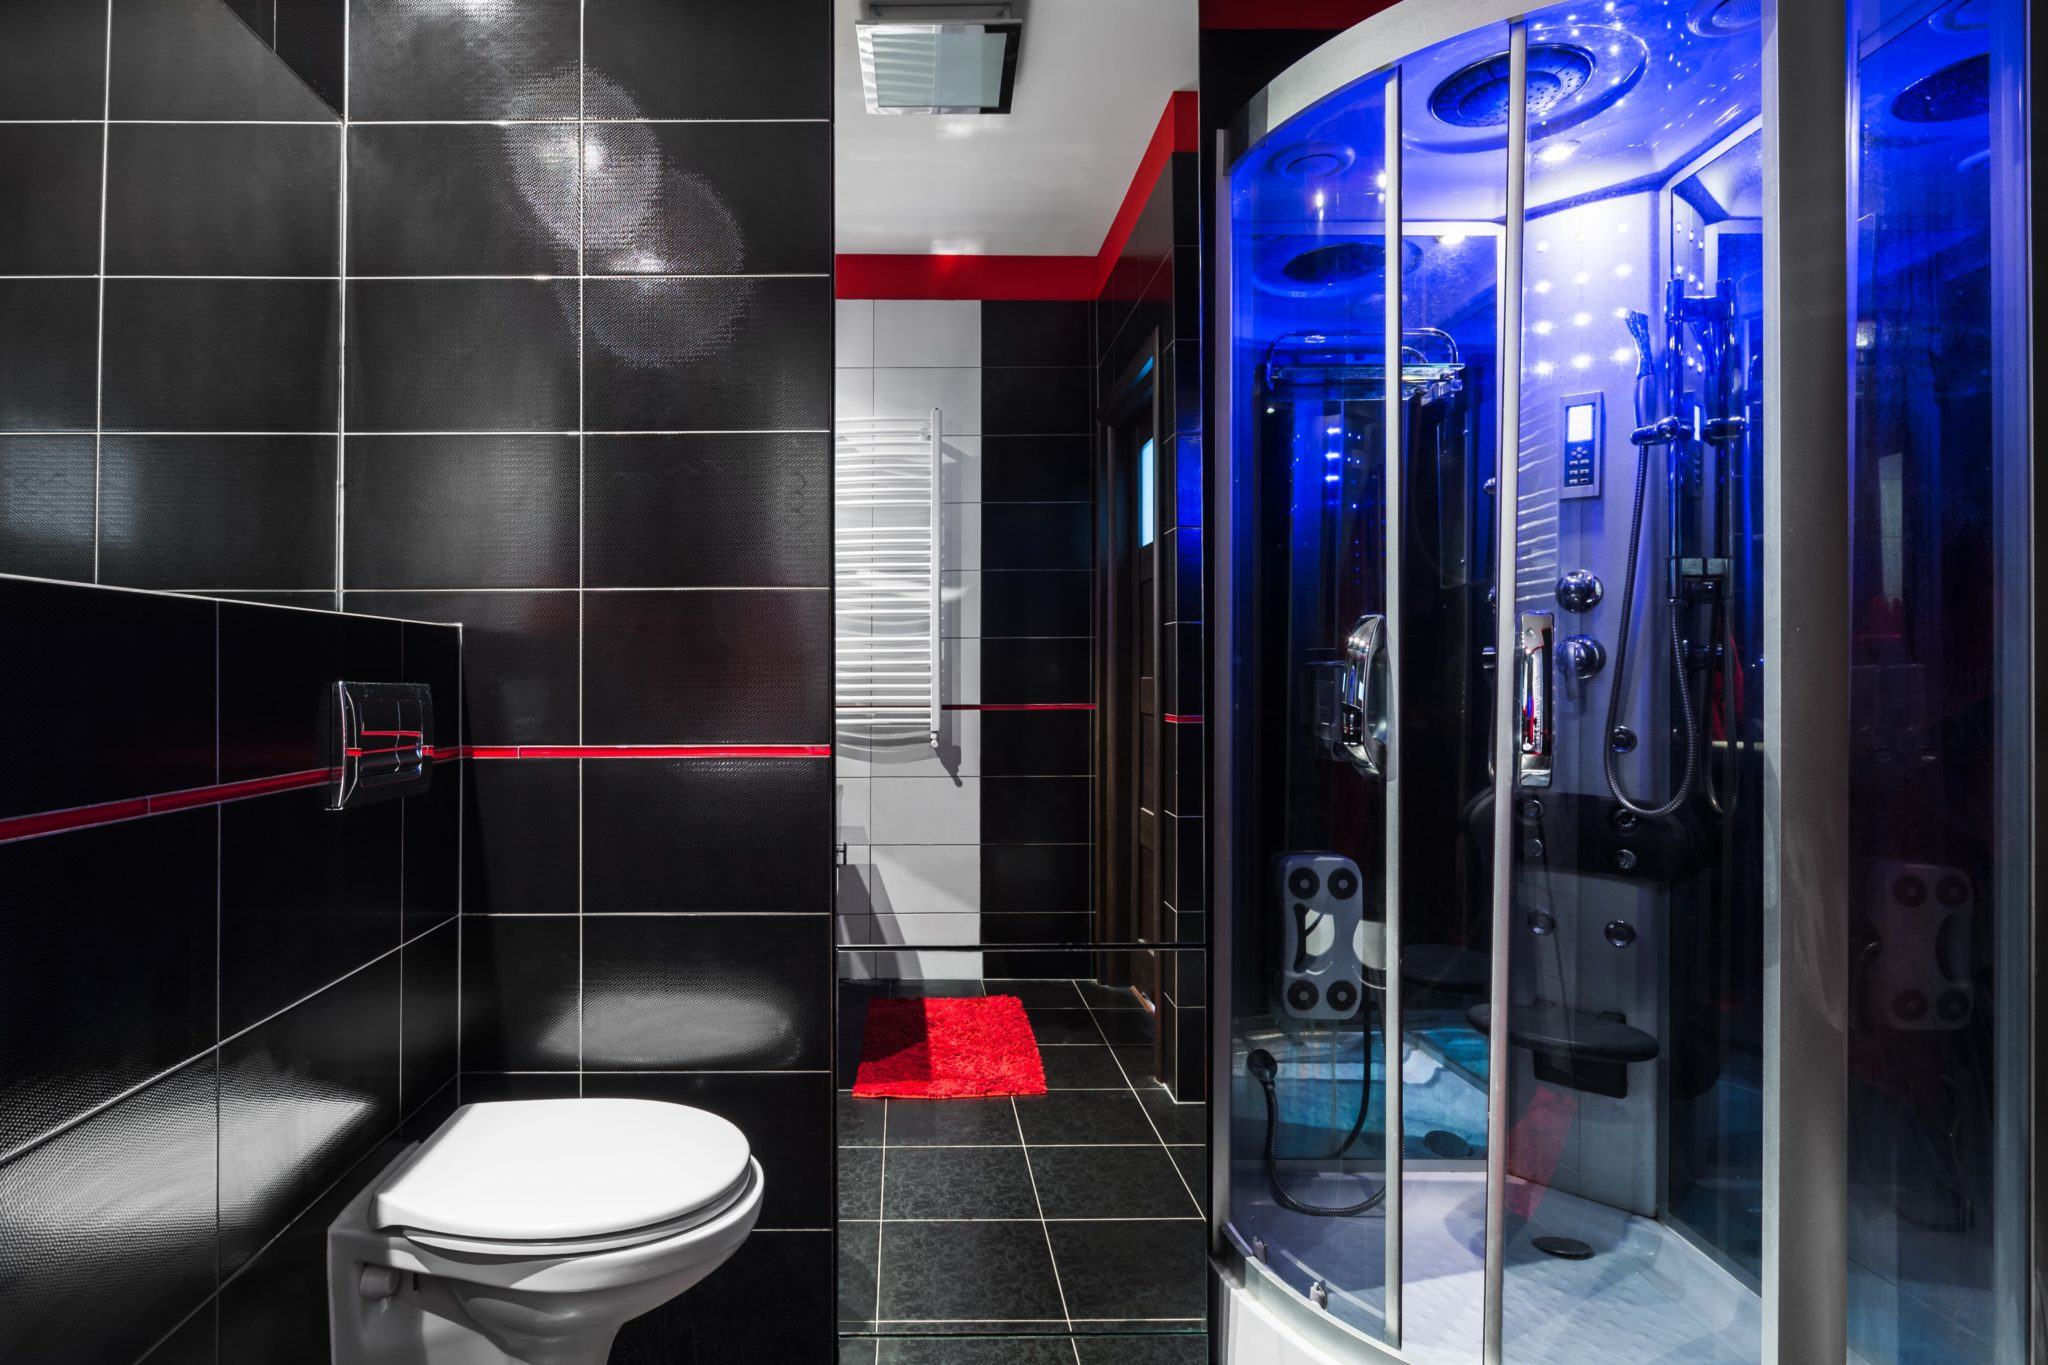 hi tech bathroom upgrades your home could really use